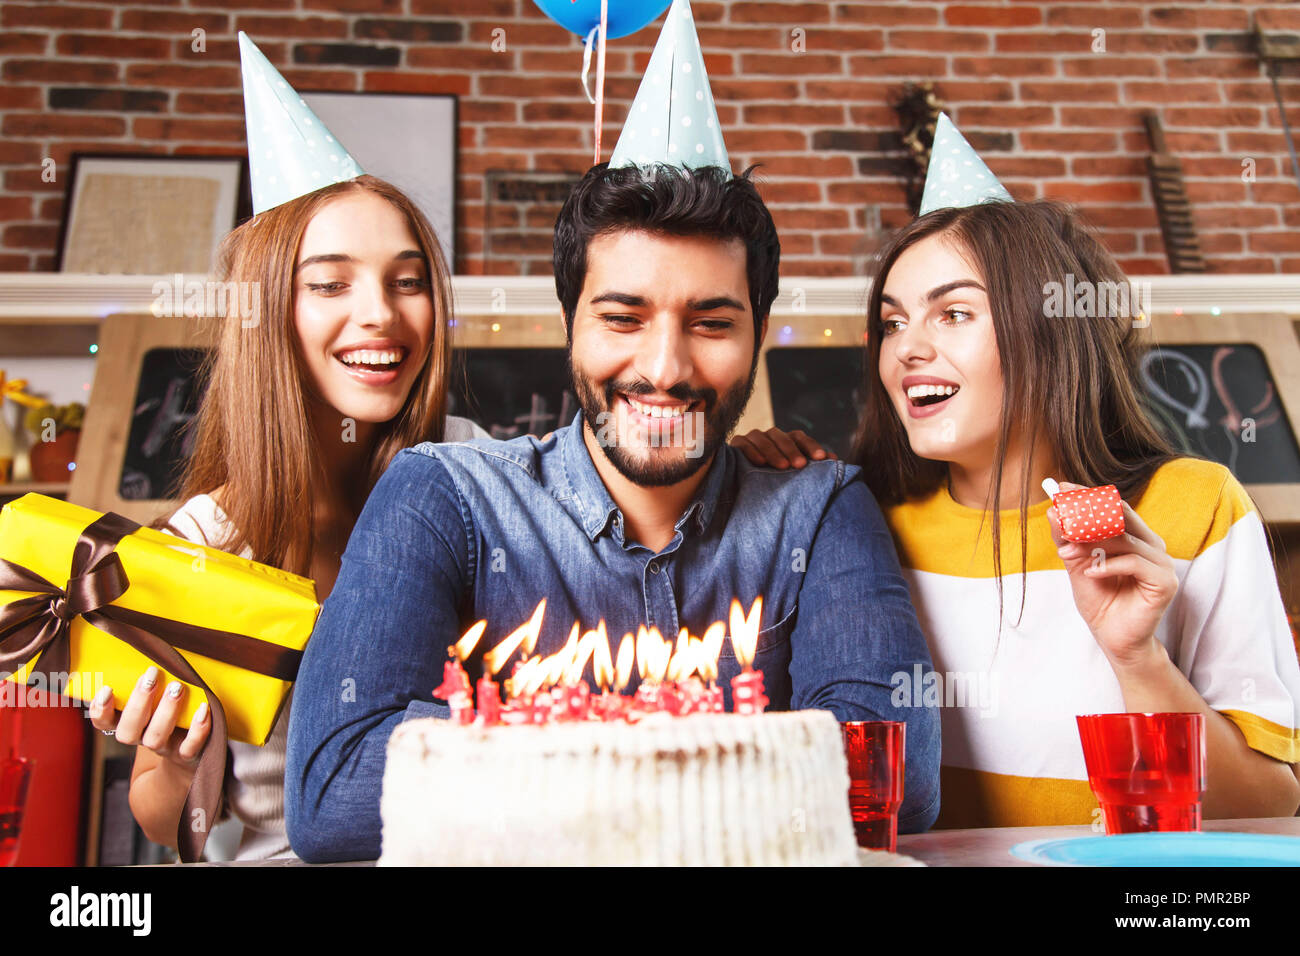 Happy bearded man ready to blow out candles on the white cake at birthday party with his girlfriends - Stock Image